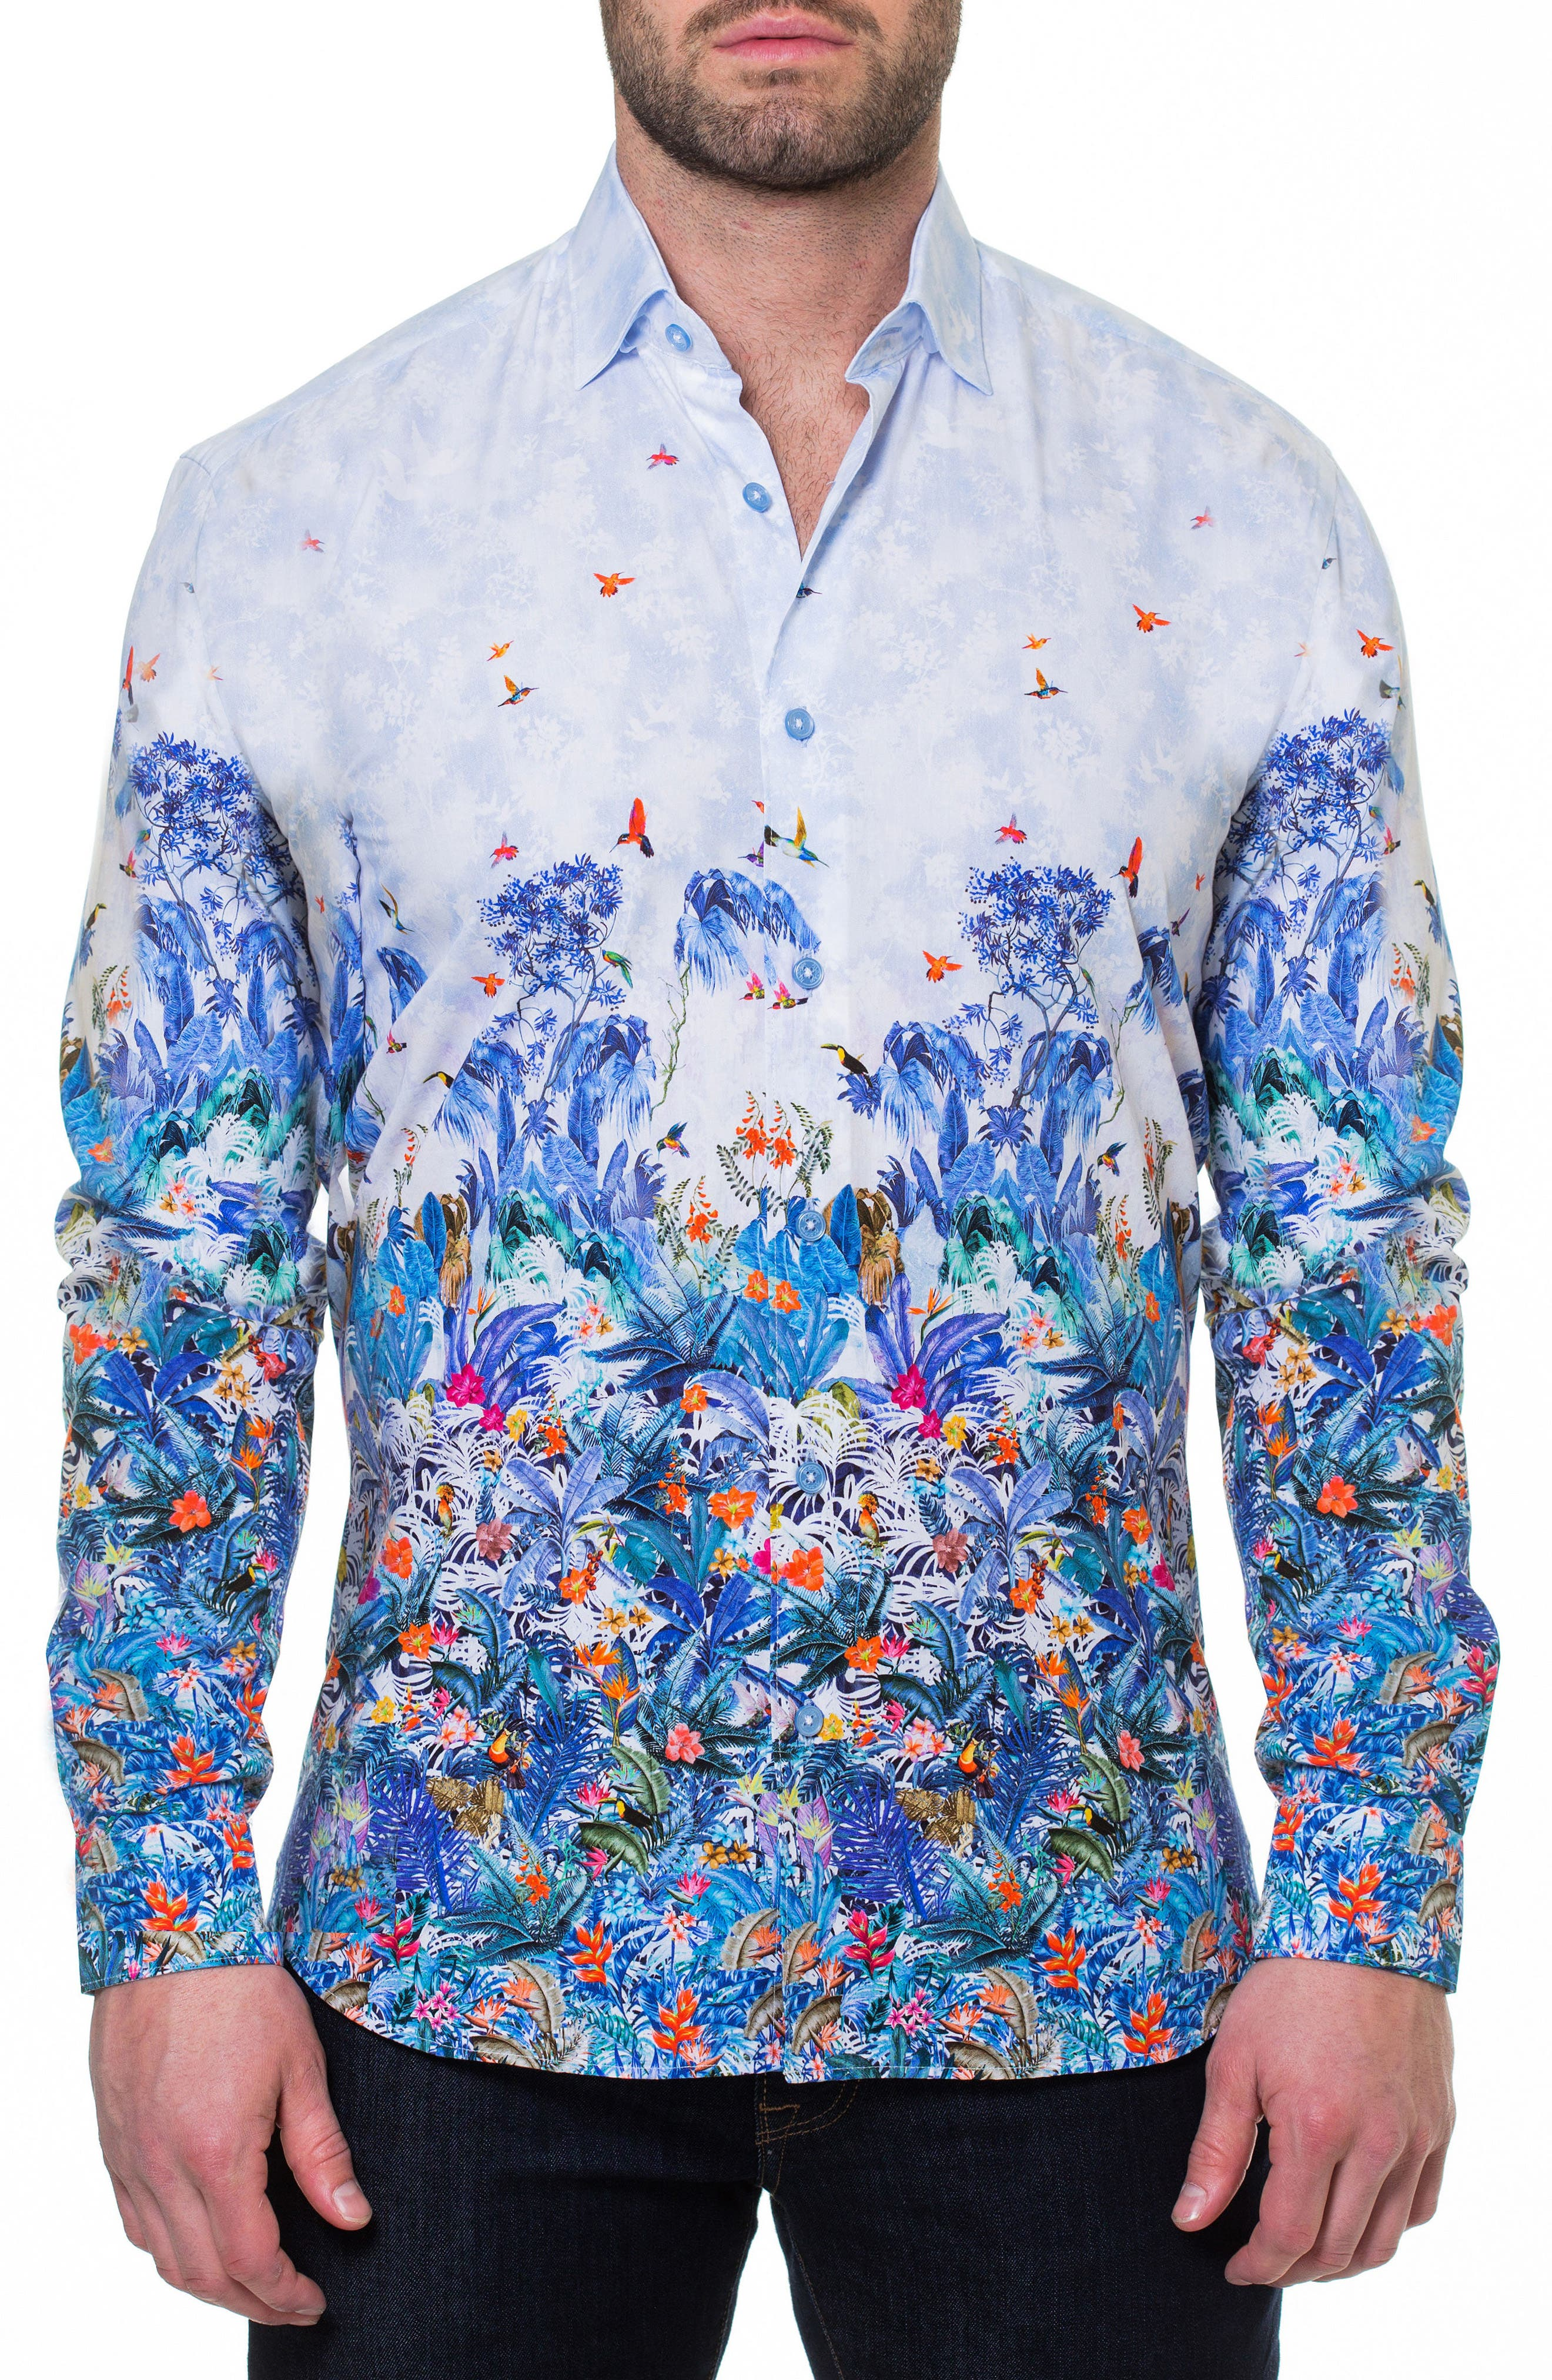 Maceoo Luxor Amazon Slim Fit Print Sport Shirt